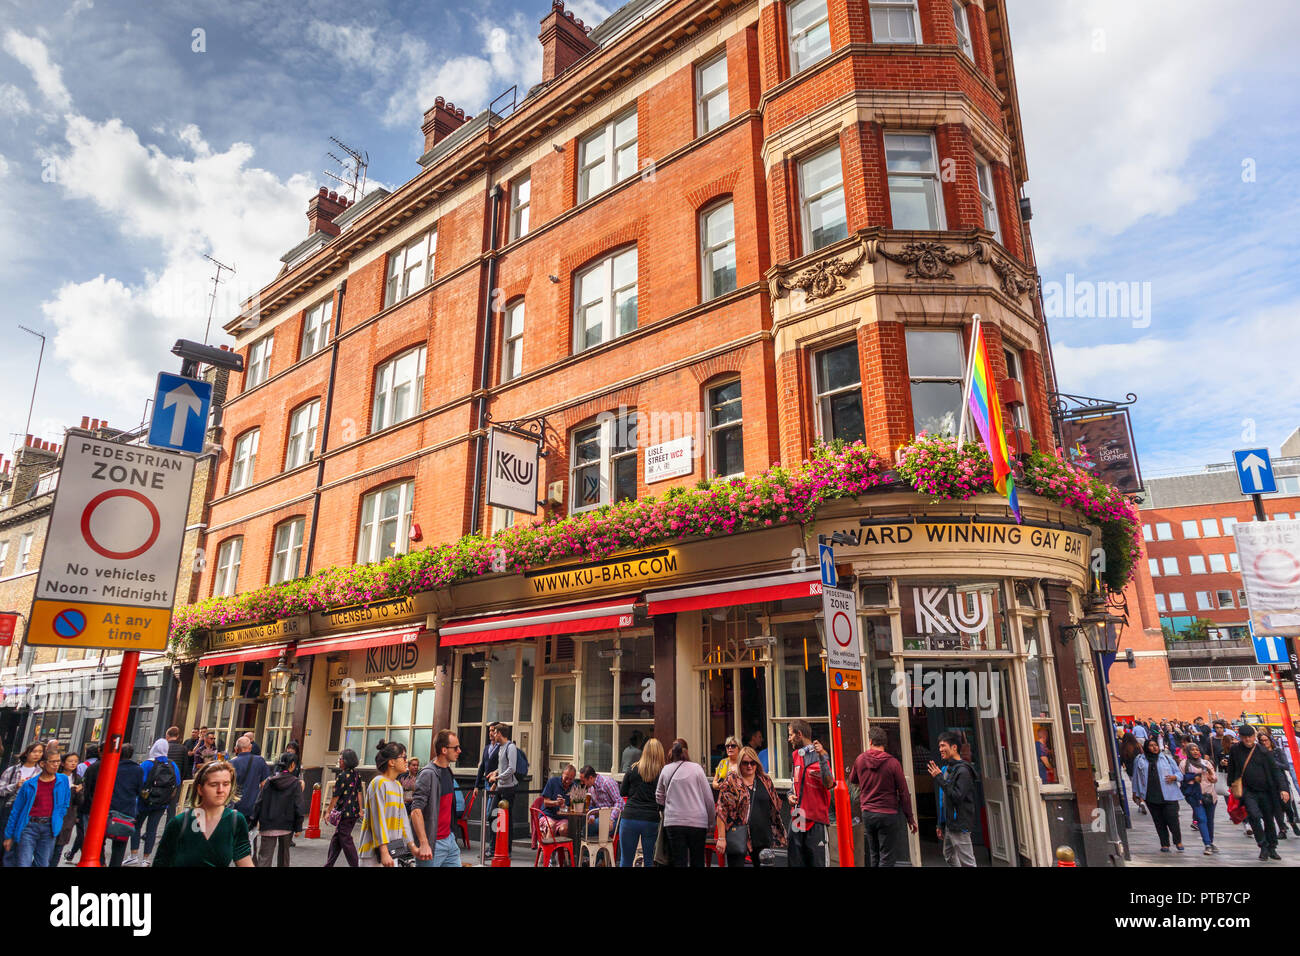 Ku Bar, a popular and famous gay bar in Lisle Street, on a busy crowded afternoon in Chinatown in Soho, City of Westminster, West End of London, UK - Stock Image